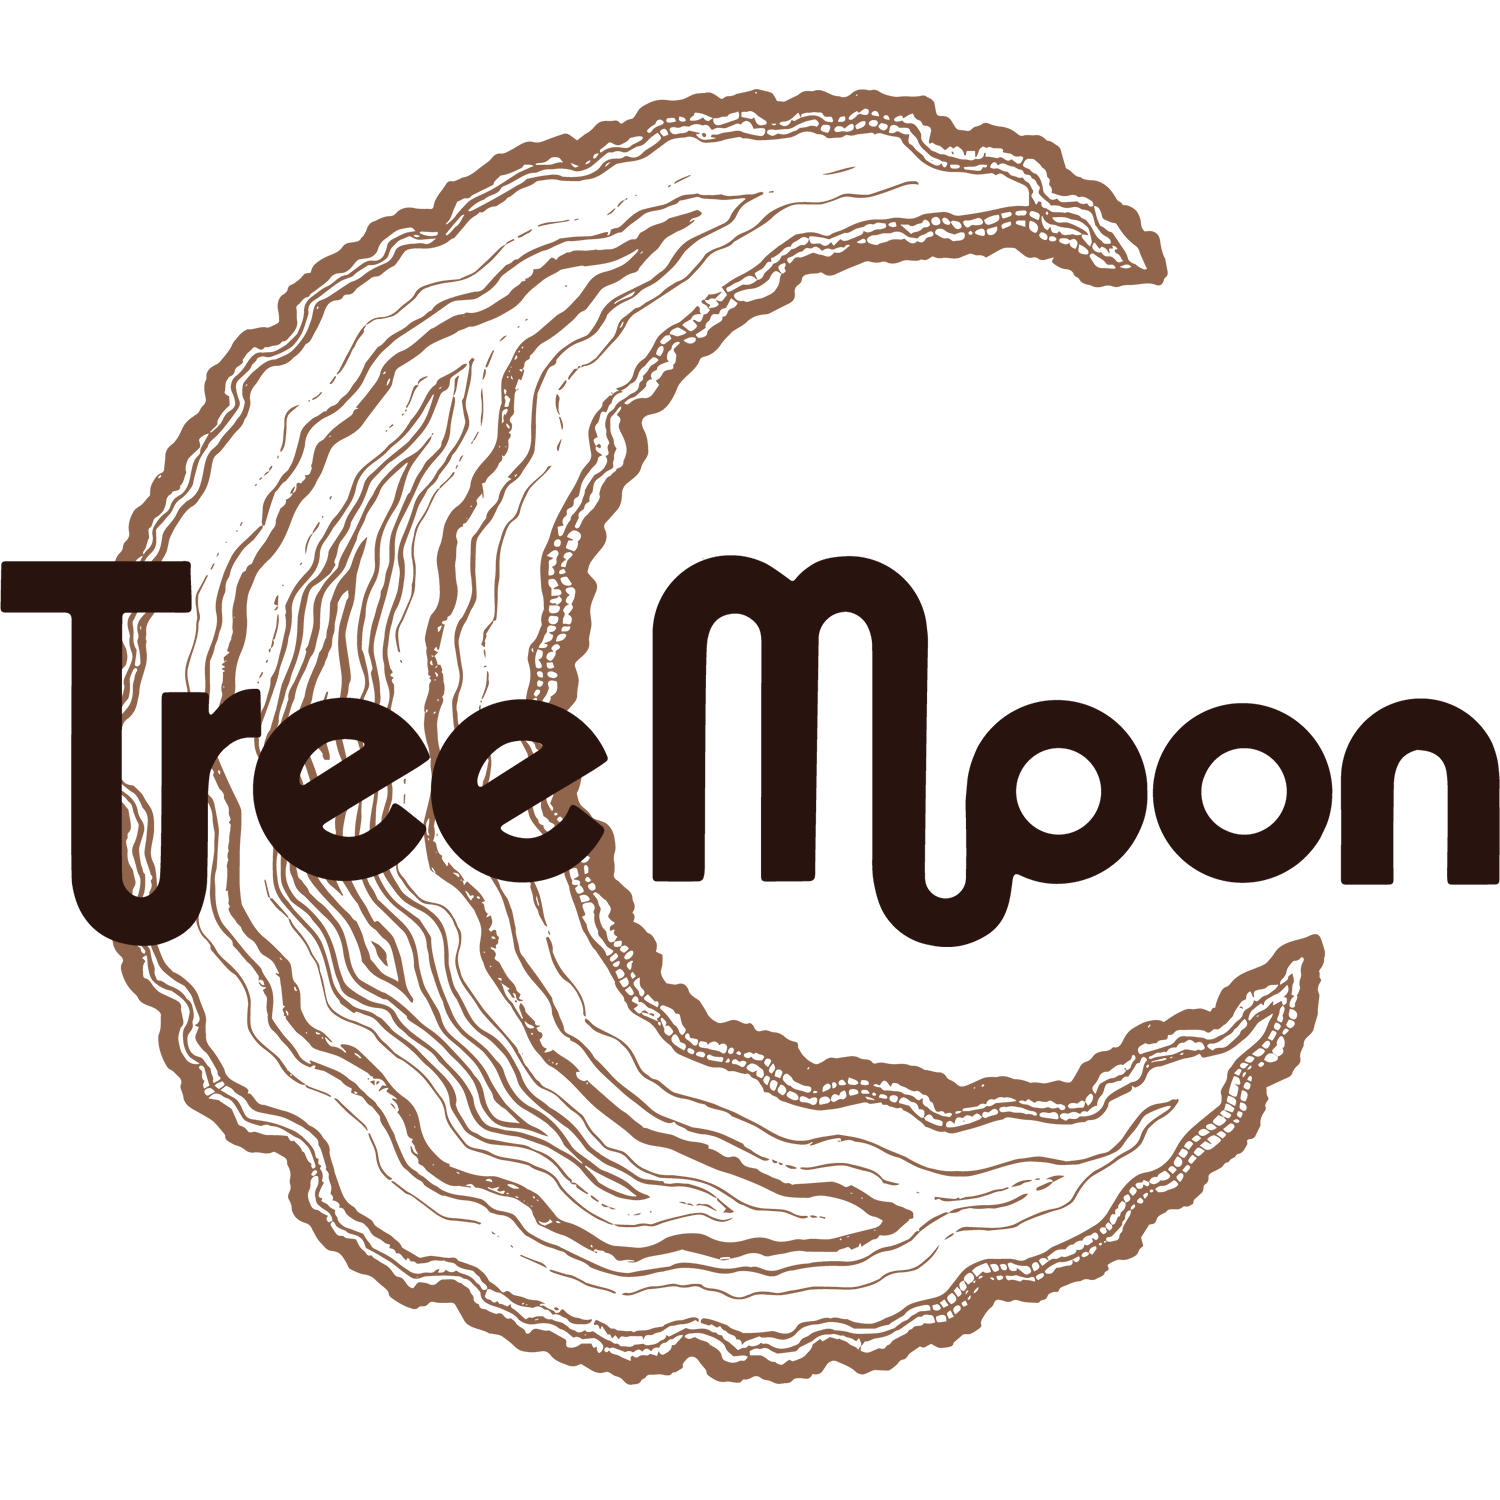 TreeMoon Cannabis Fashion: a Black business surviving the pandemic